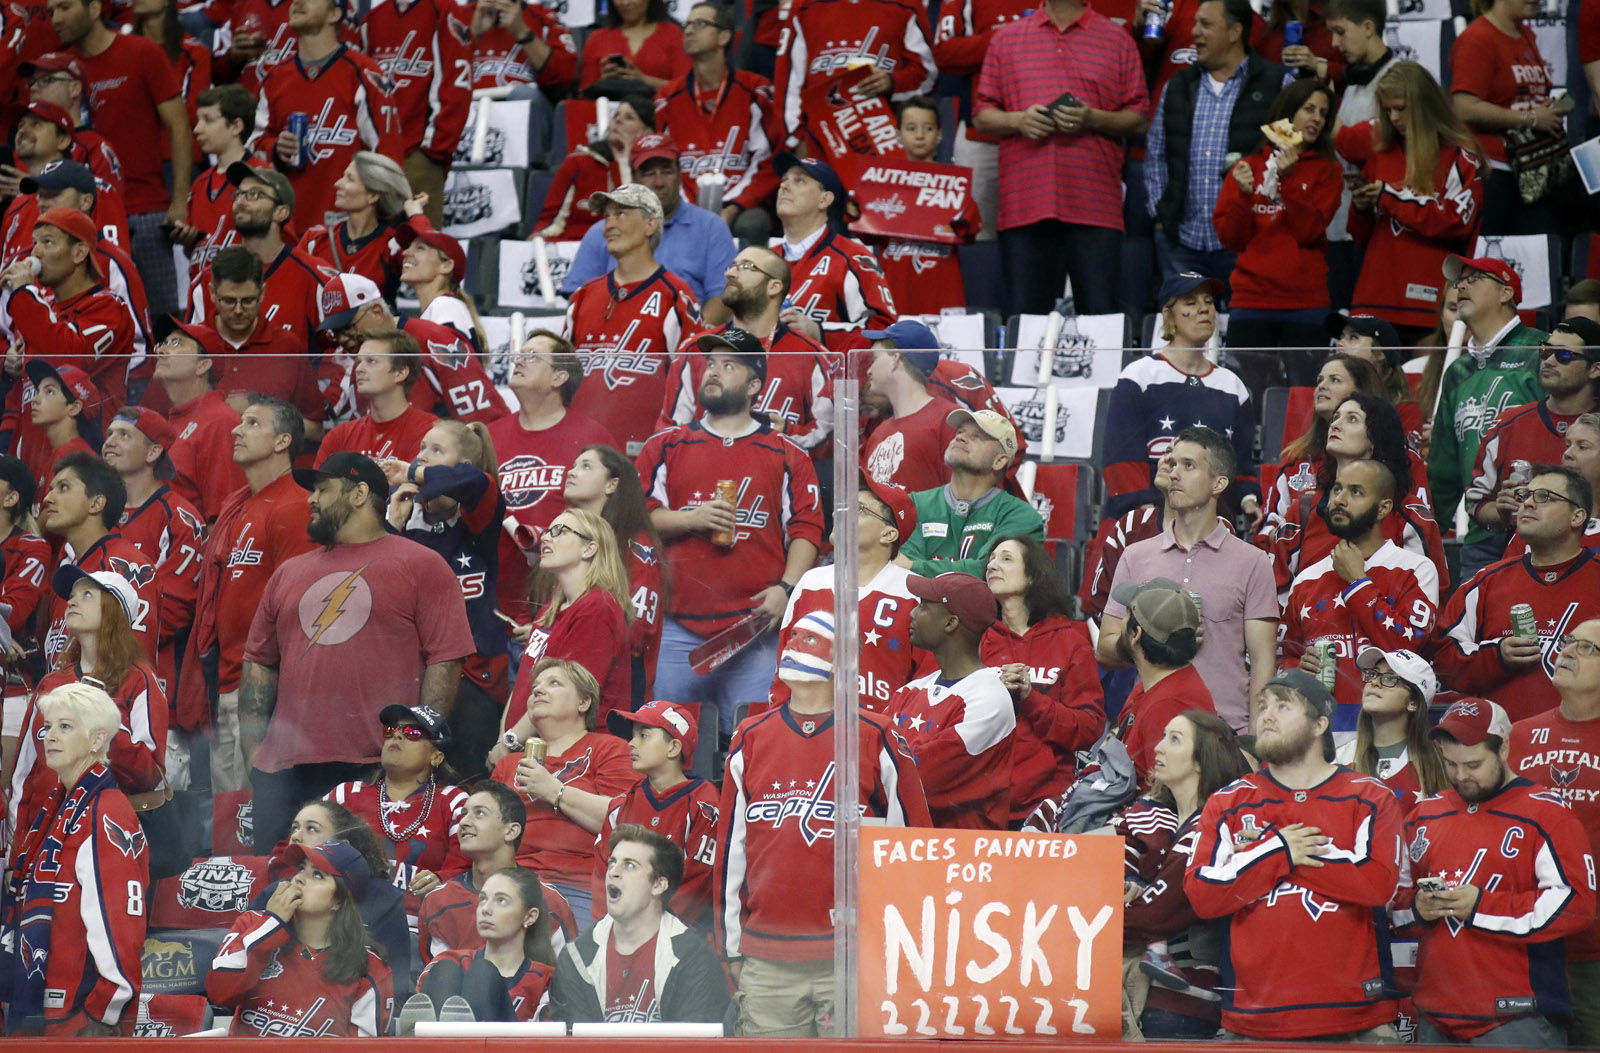 Washington Capitals fans wait for their team to warm up before Game 3 of the NHL hockey Stanley Cup Final between the Capitals and the Vegas Golden Knights, Saturday, June 2, 2018, in Washington. (AP Photo/Alex Brandon)